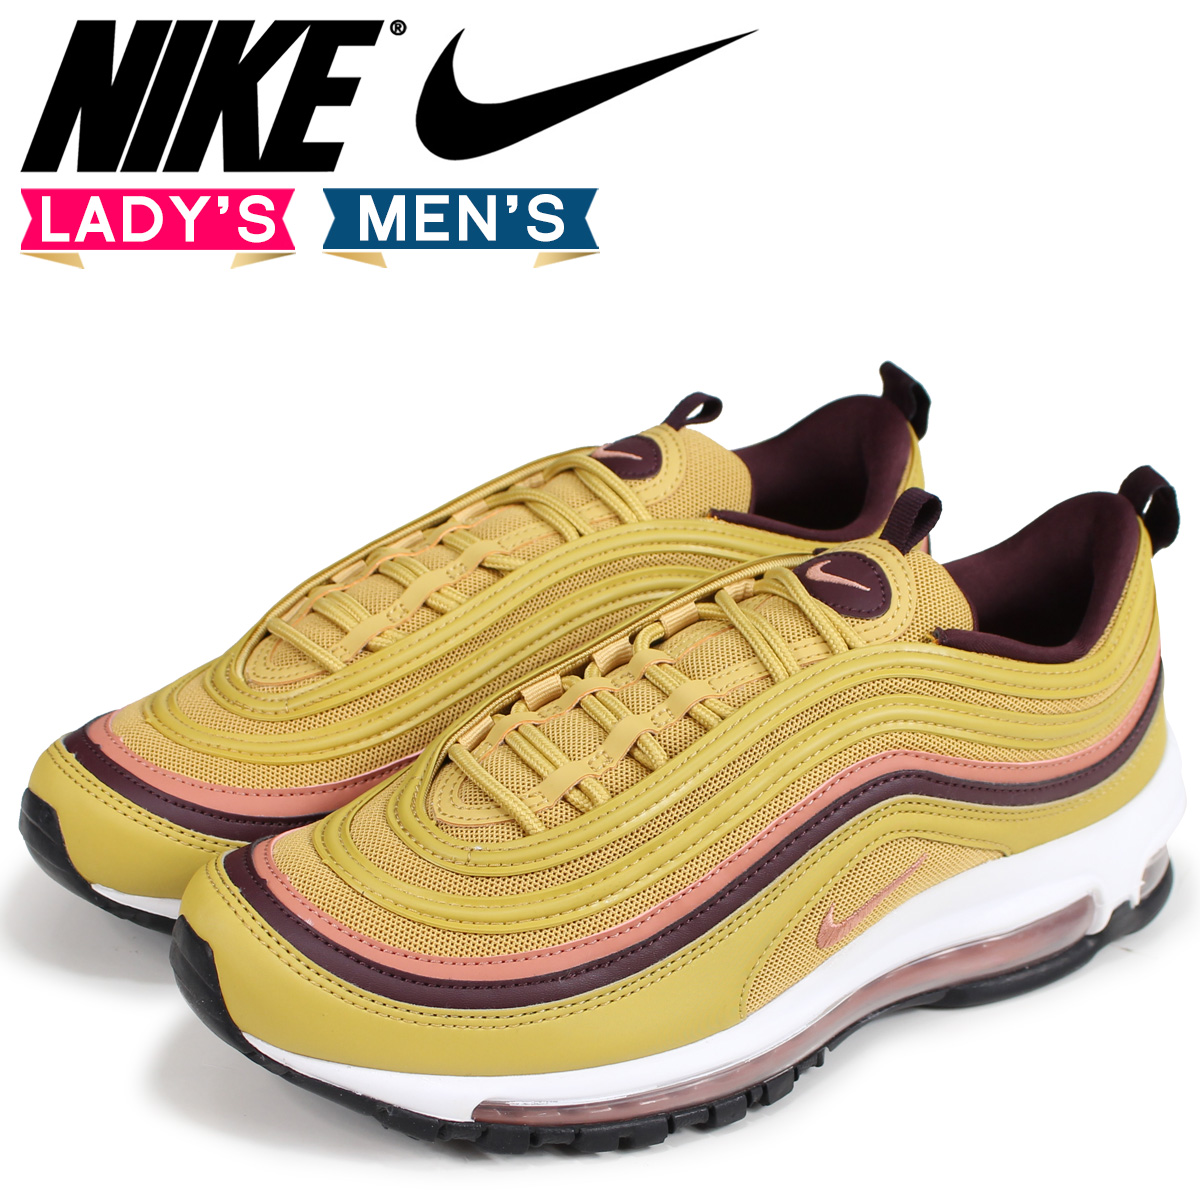 NIKE Kie Ney AMAX 97 lady's men's sneakers WMNS AIR MAX 97 921,733 700 gold